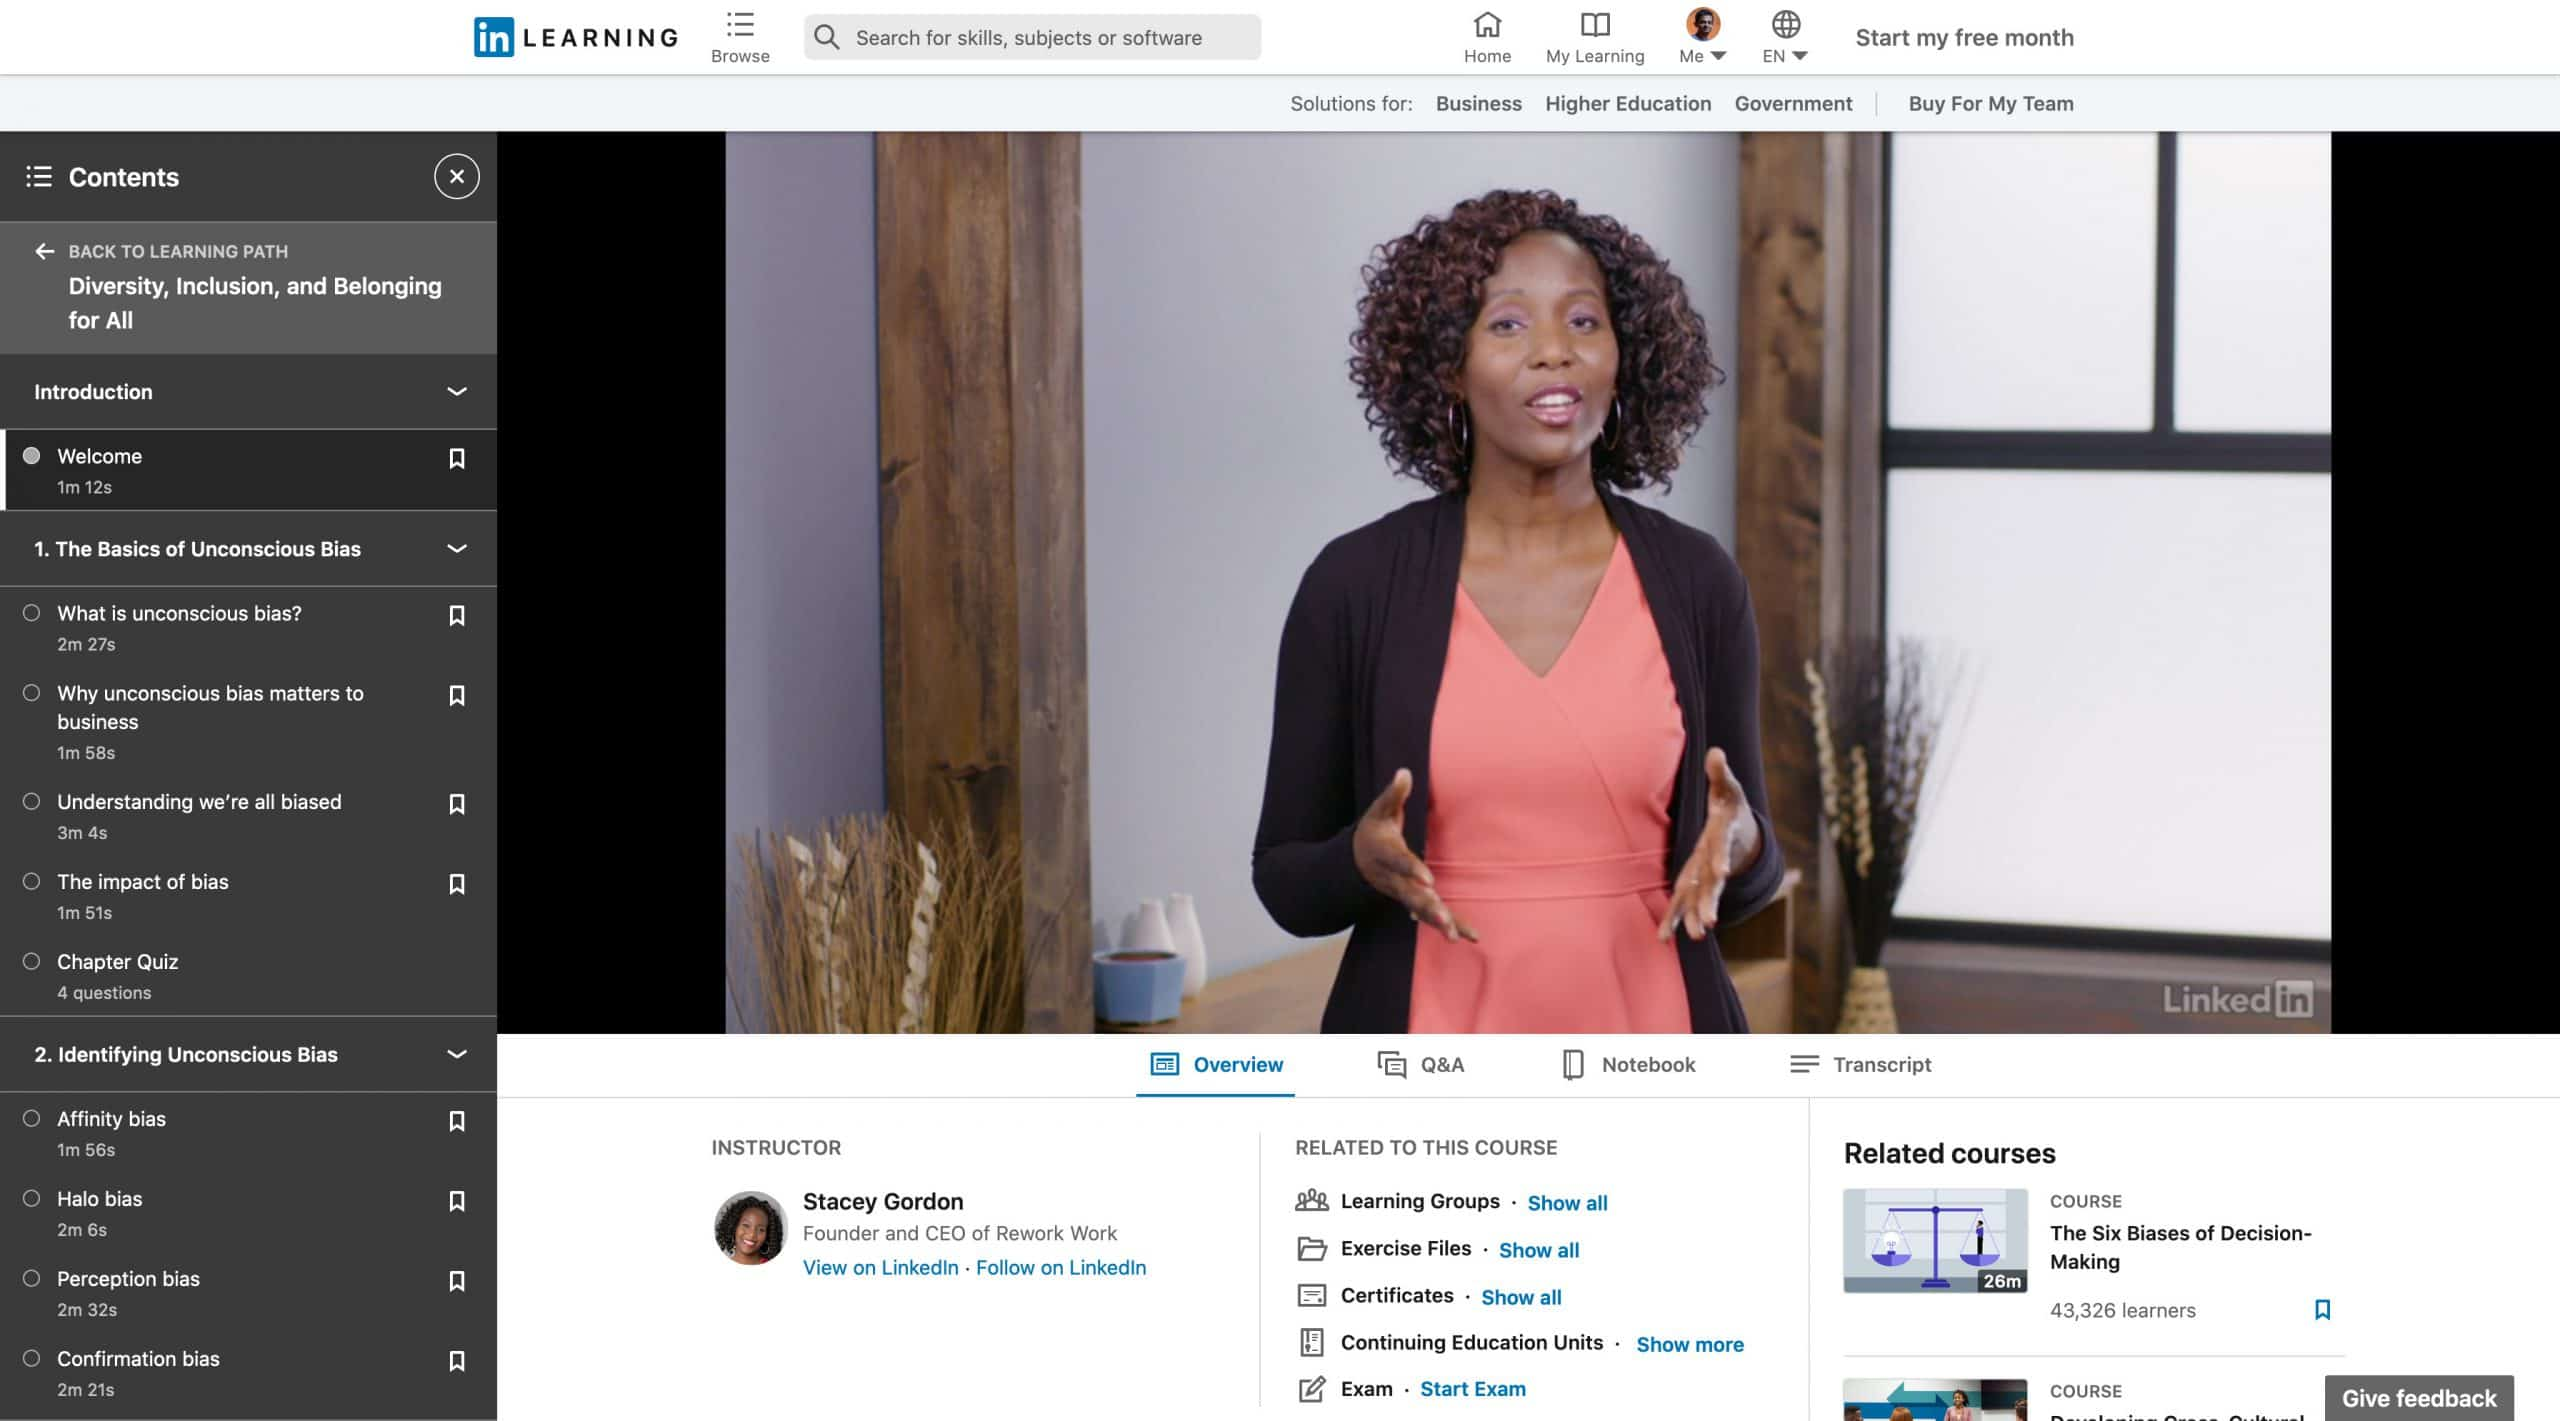 LinkedIn Course Offering